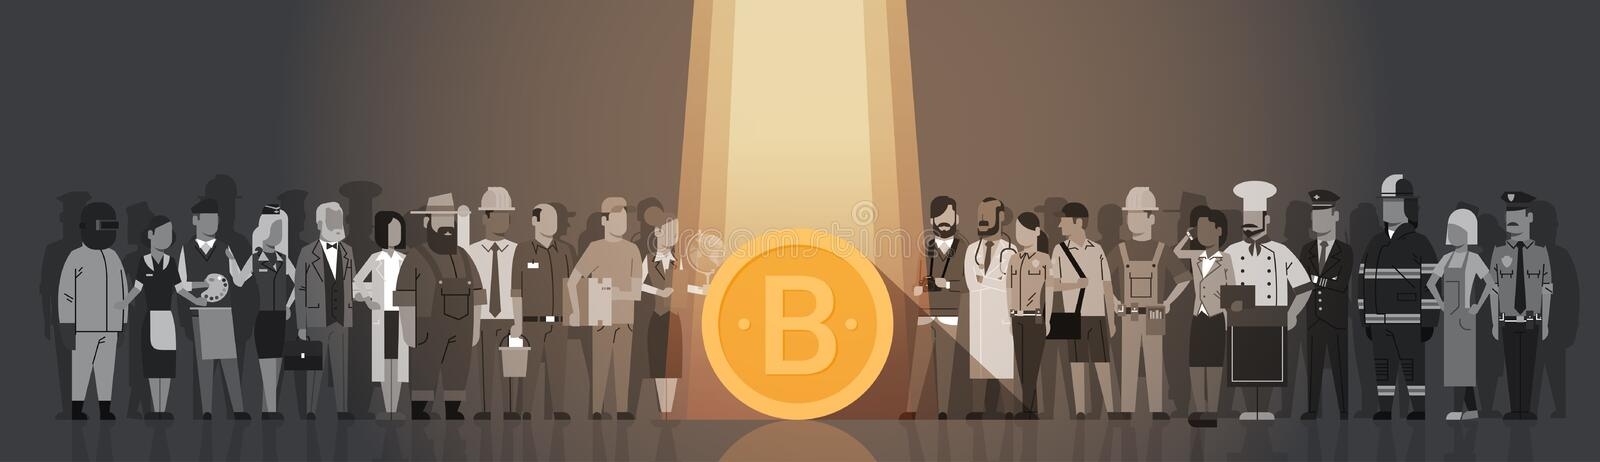 Golden Bitcoin In Spot Light Over Silhouette People Crowd Modern Web Money Digital Currency Concept stock illustration